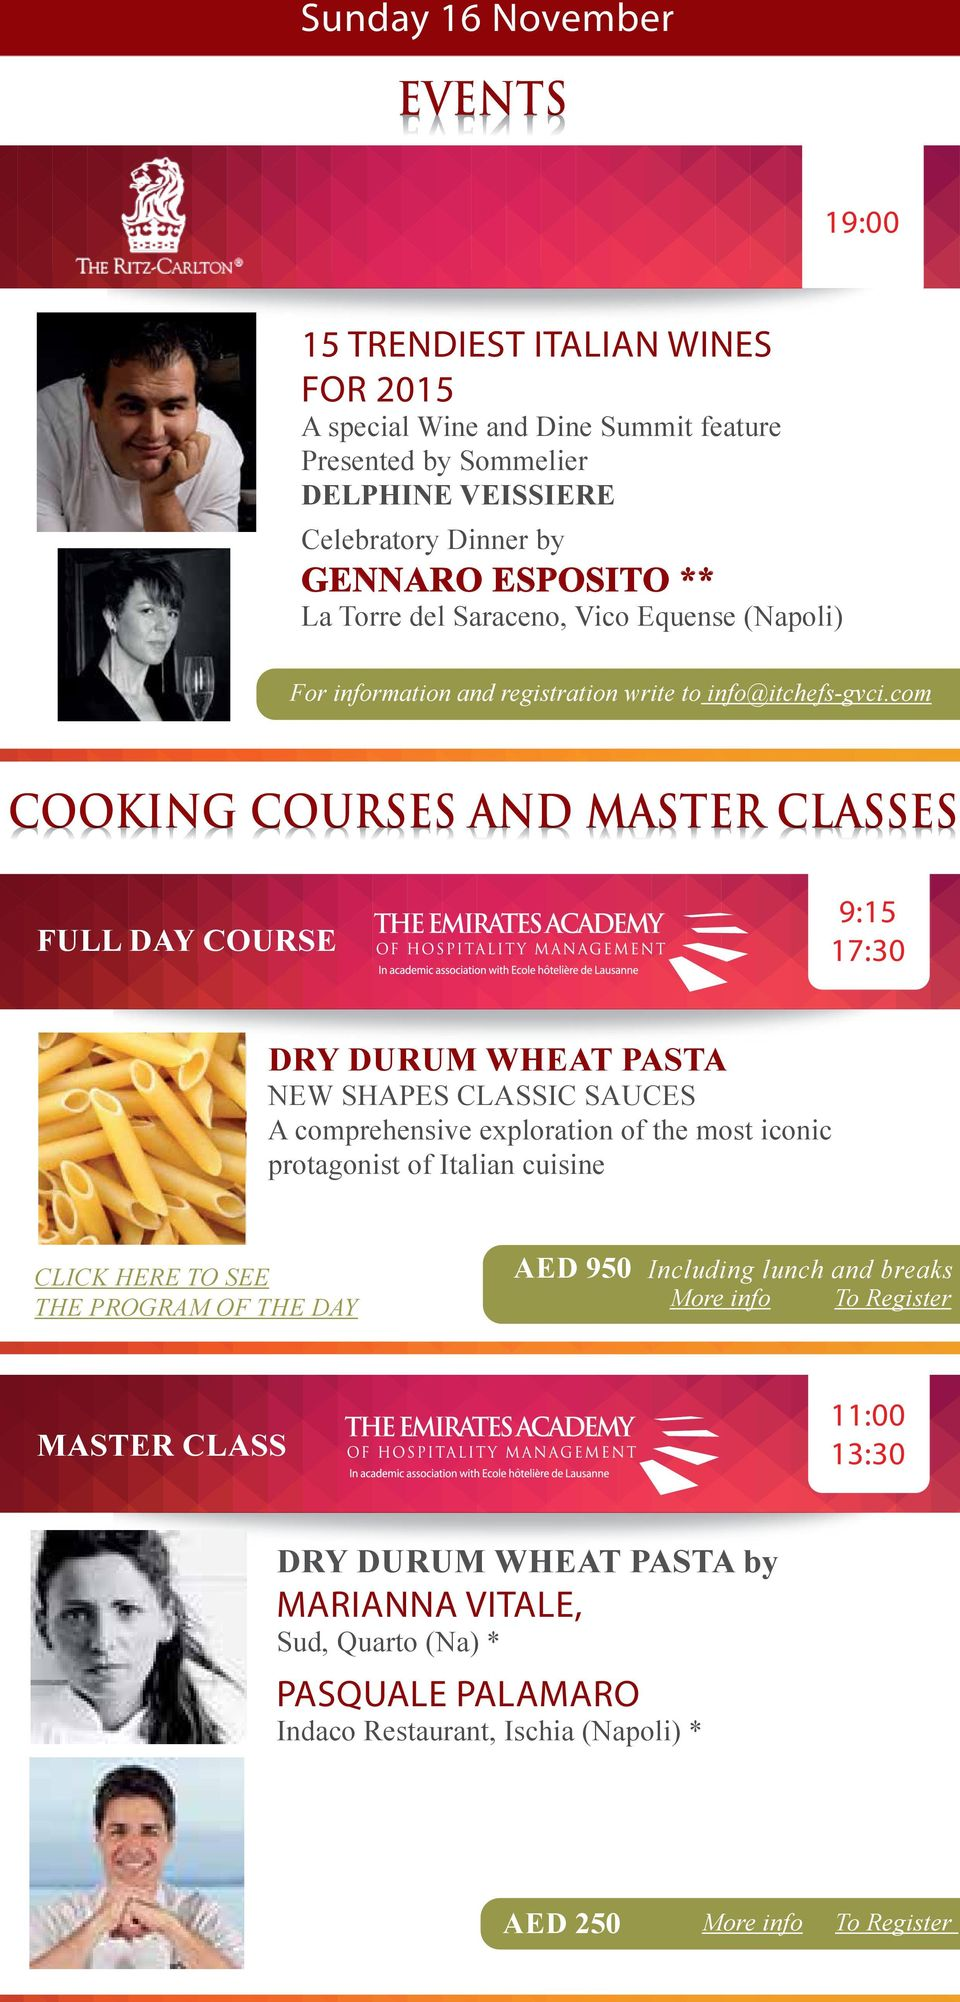 com COOKING COURSES AND MASTER CLASSES FULL DAY COURSE 9:15 DRY DURUM WHEAT PASTA NEW SHAPES CLASSIC SAUCES A comprehensive exploration of the most iconic protagonist of